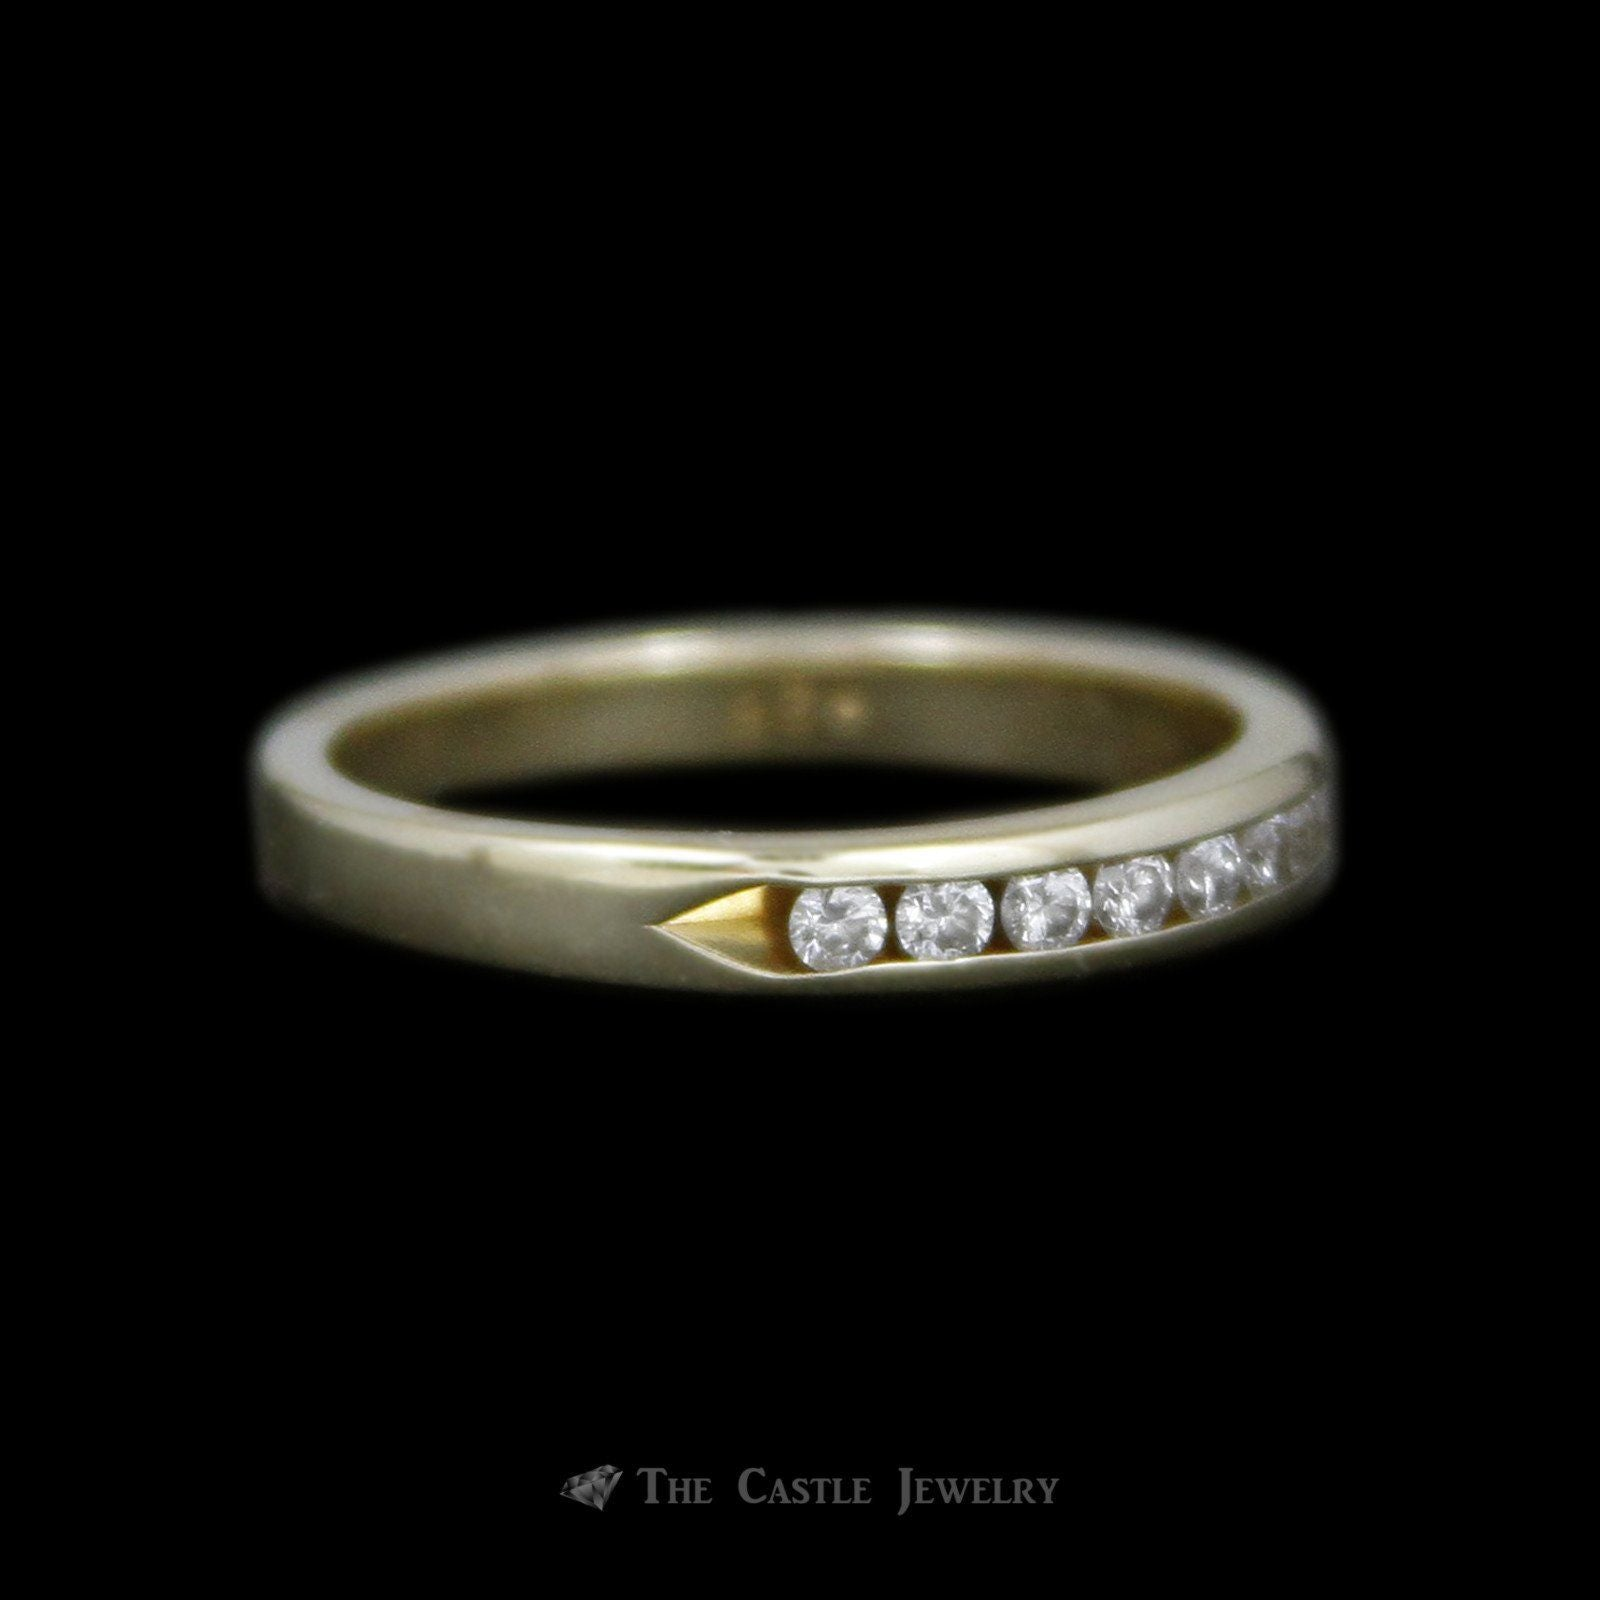 Channel Set Round Brilliant Cut .26cttw Diamond Wedding Band in 14K Yellow Gold-2